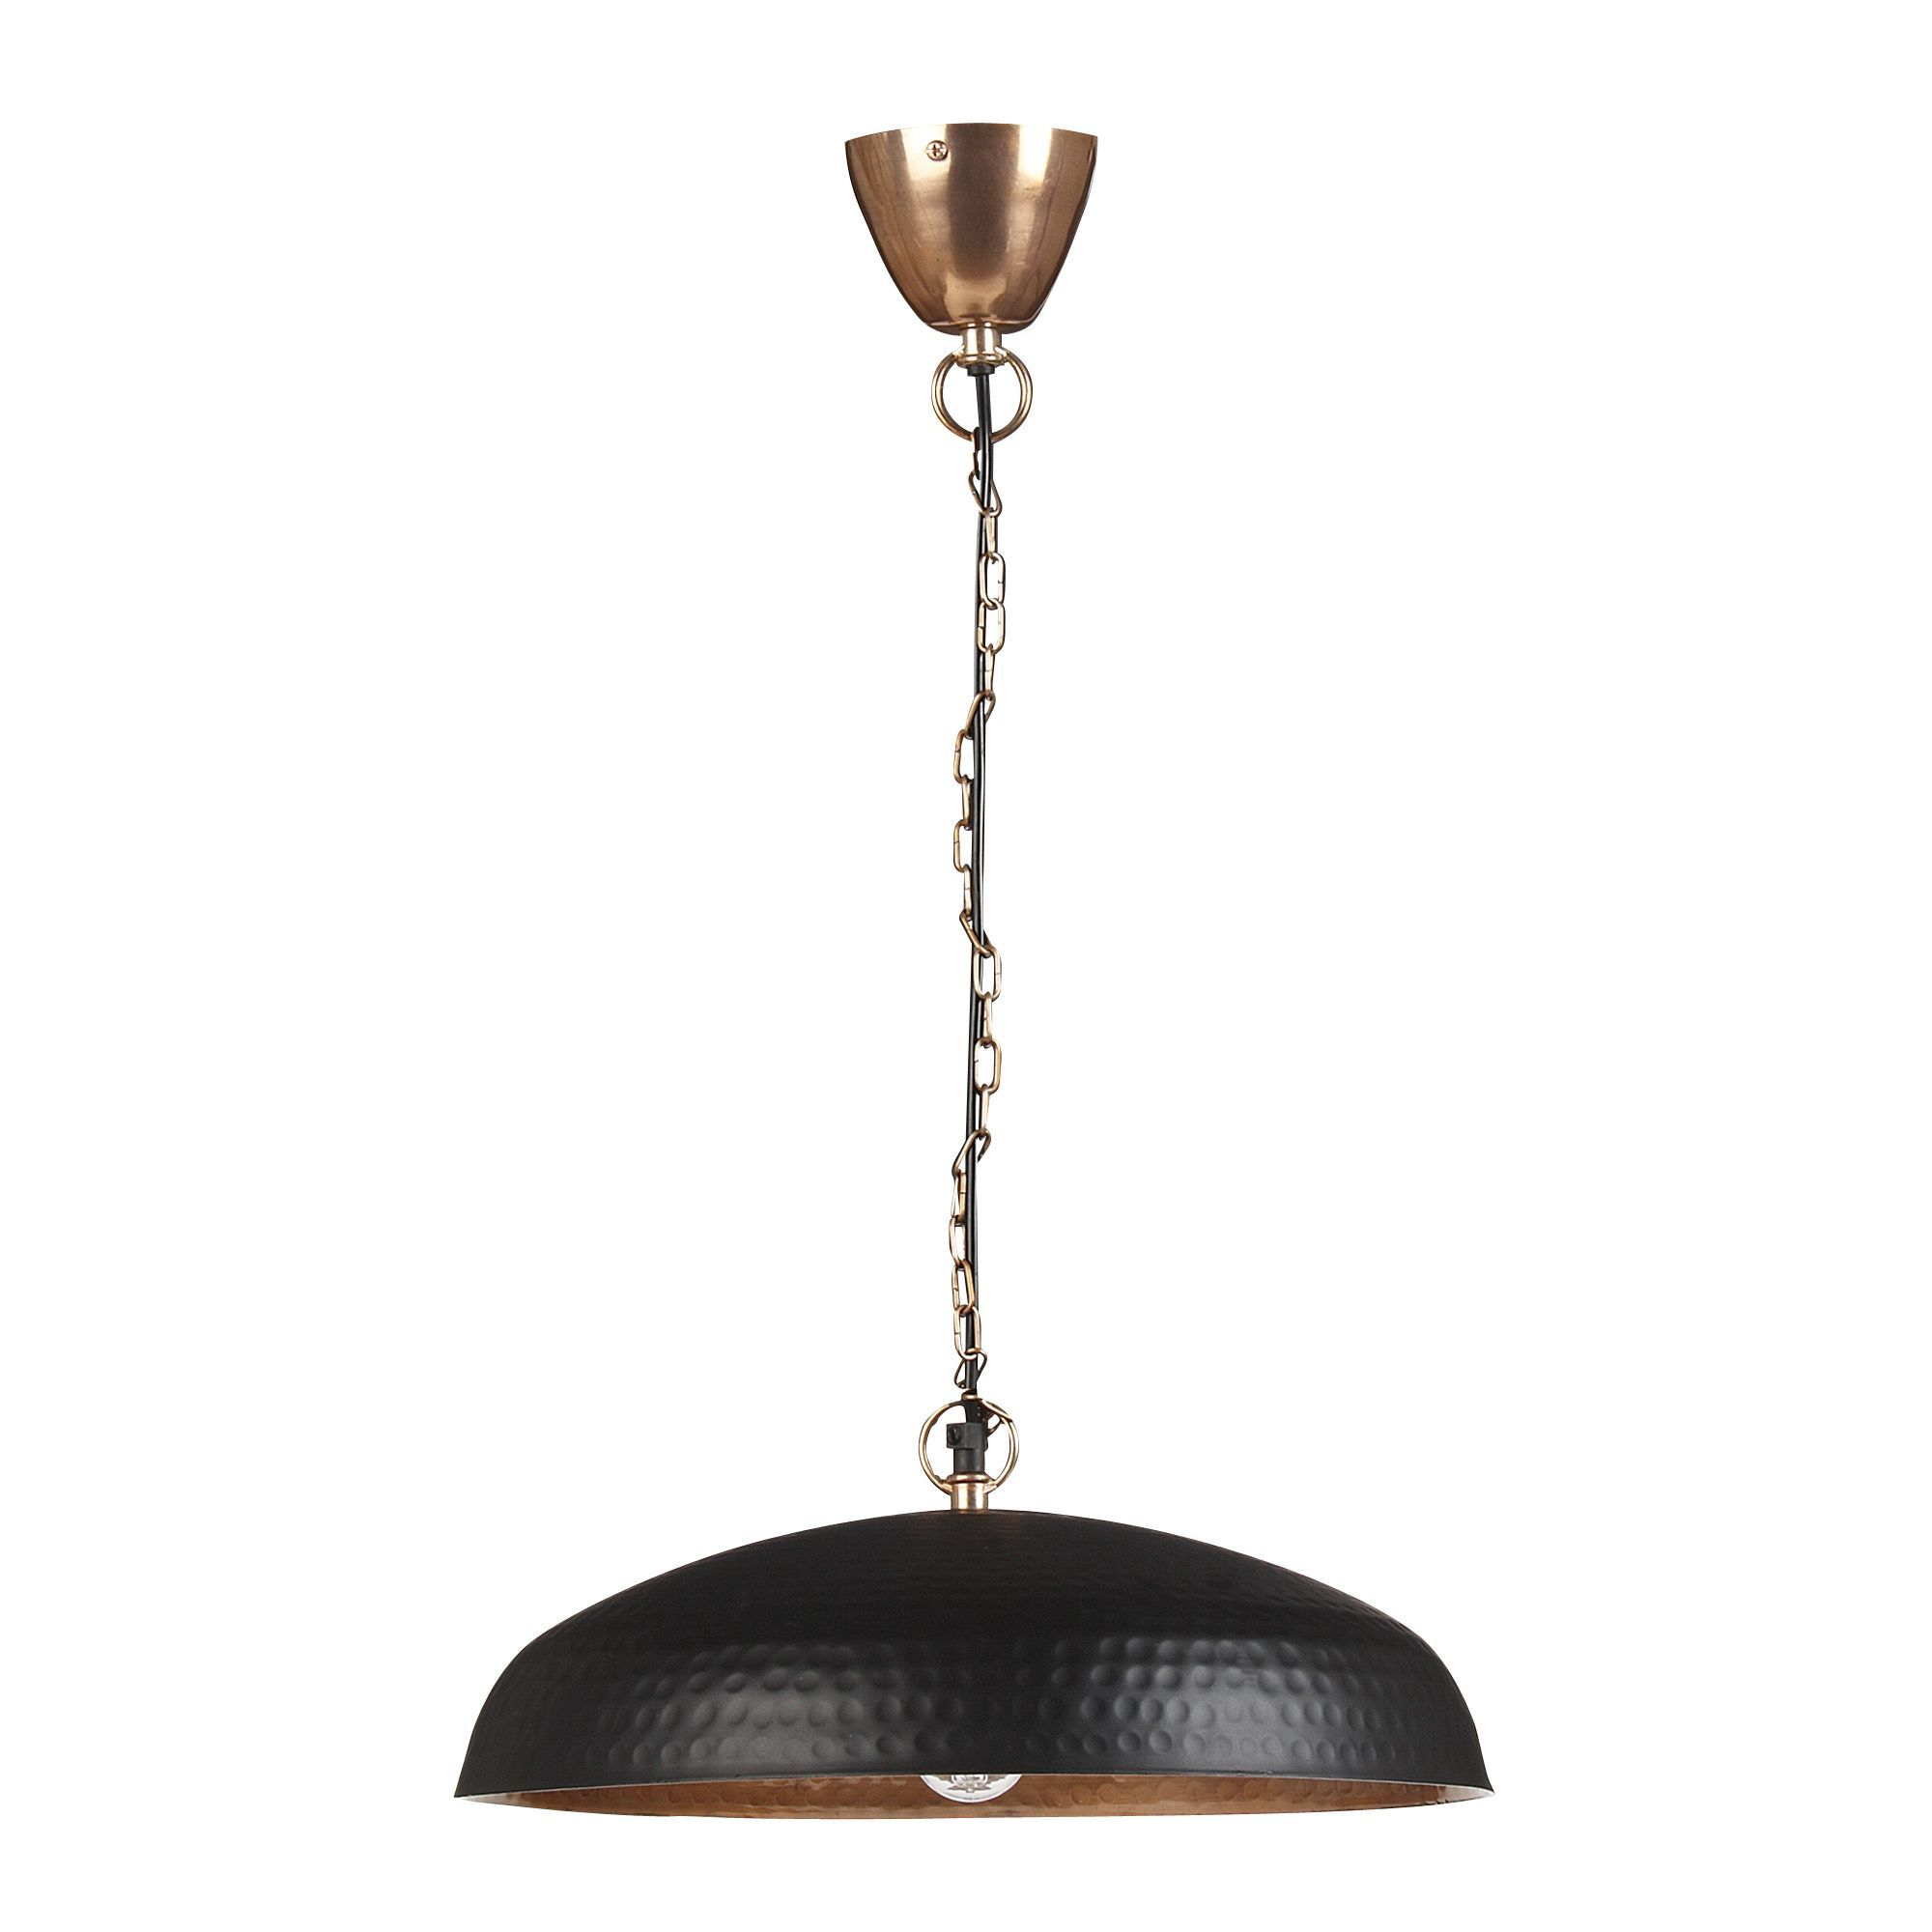 Lampe Suspension Cuivre Suspension Luminaire Alinea